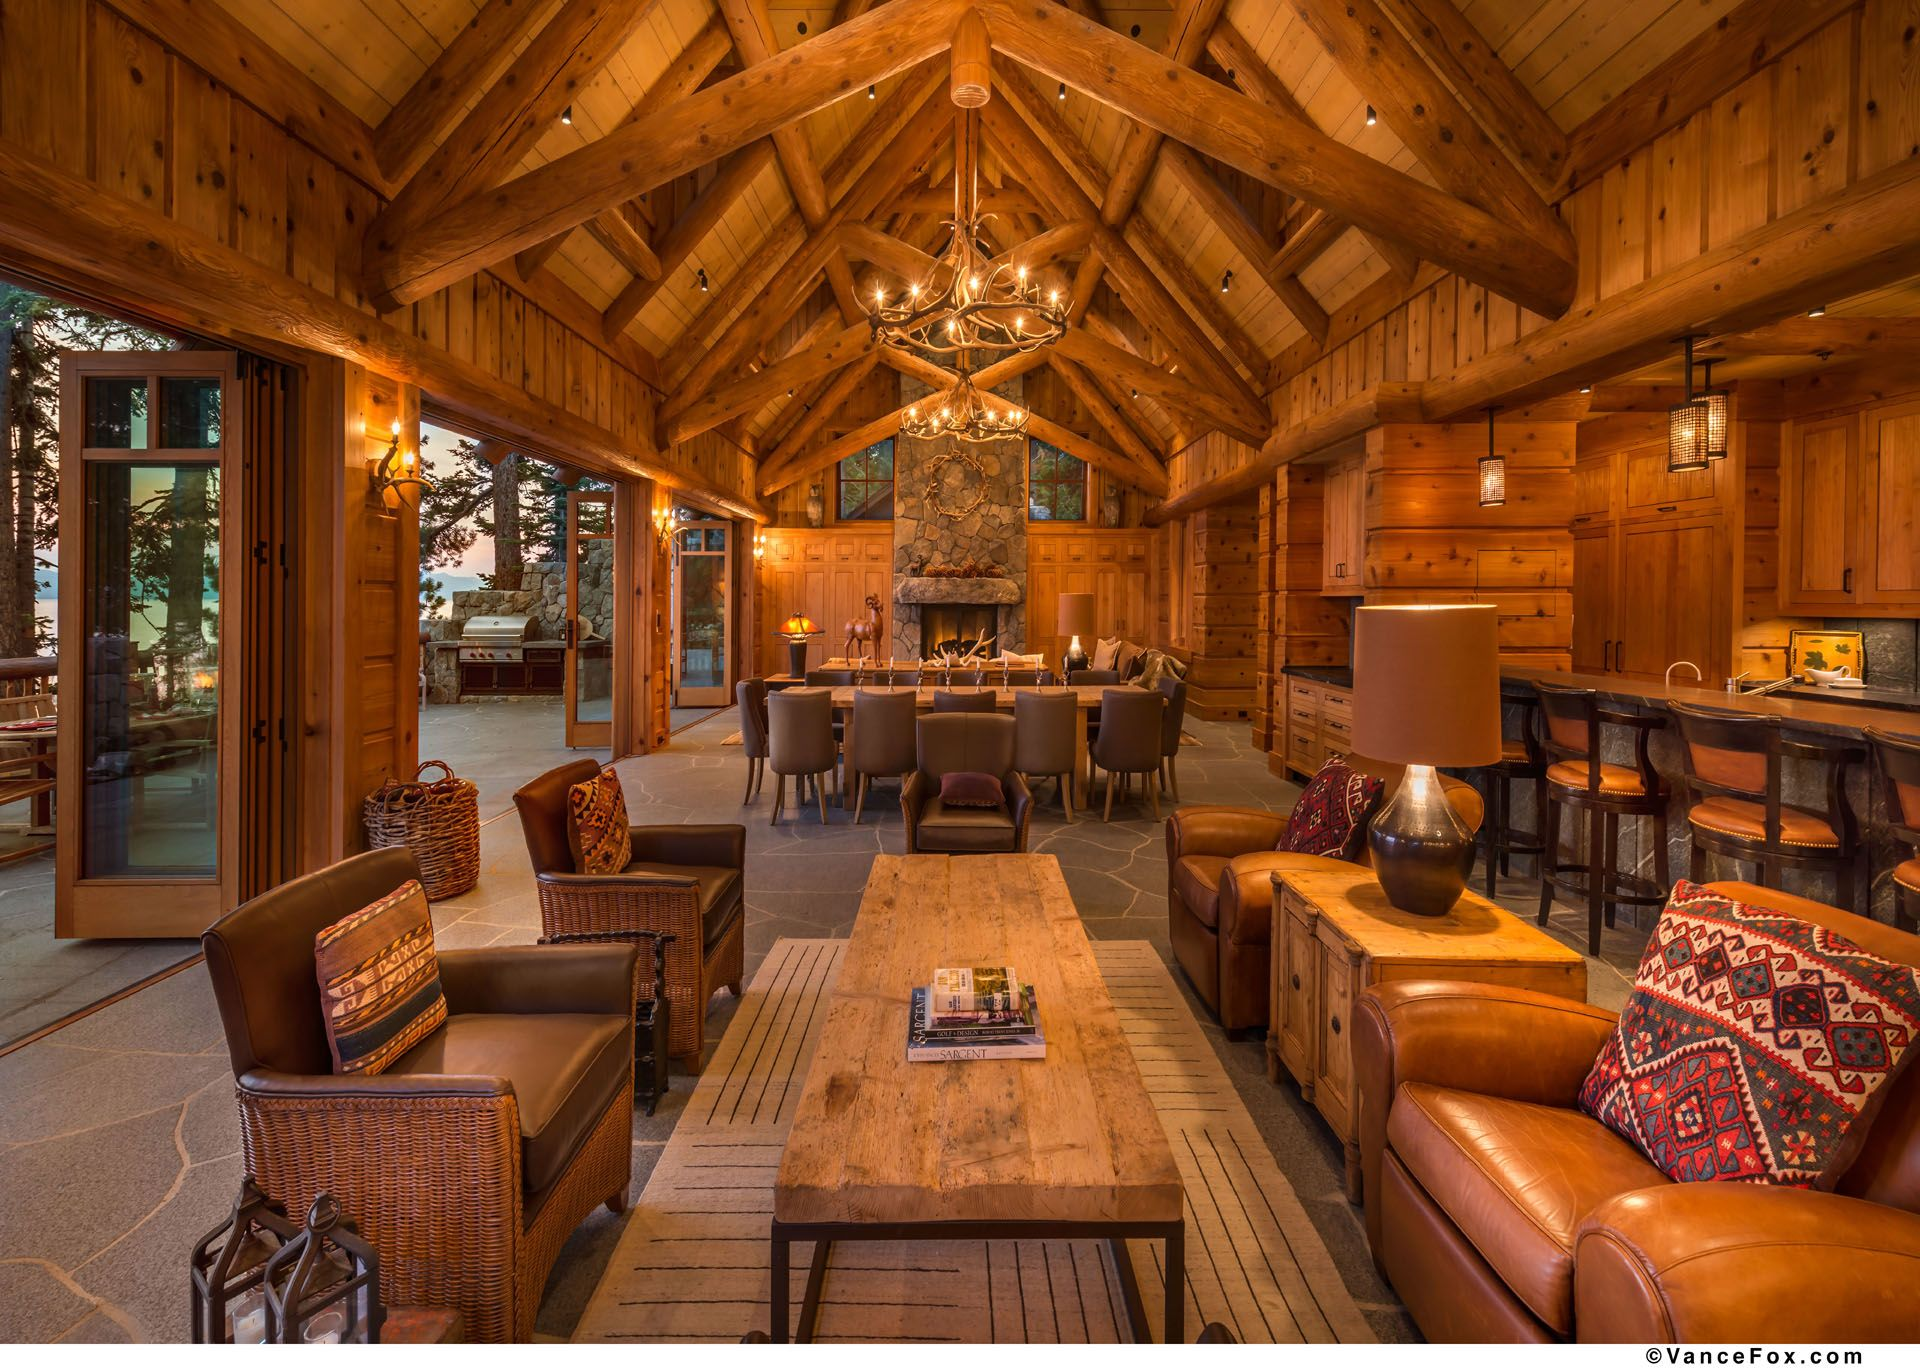 Log home interior ideas rocky point south  olson u olson architects llp  home  pinterest